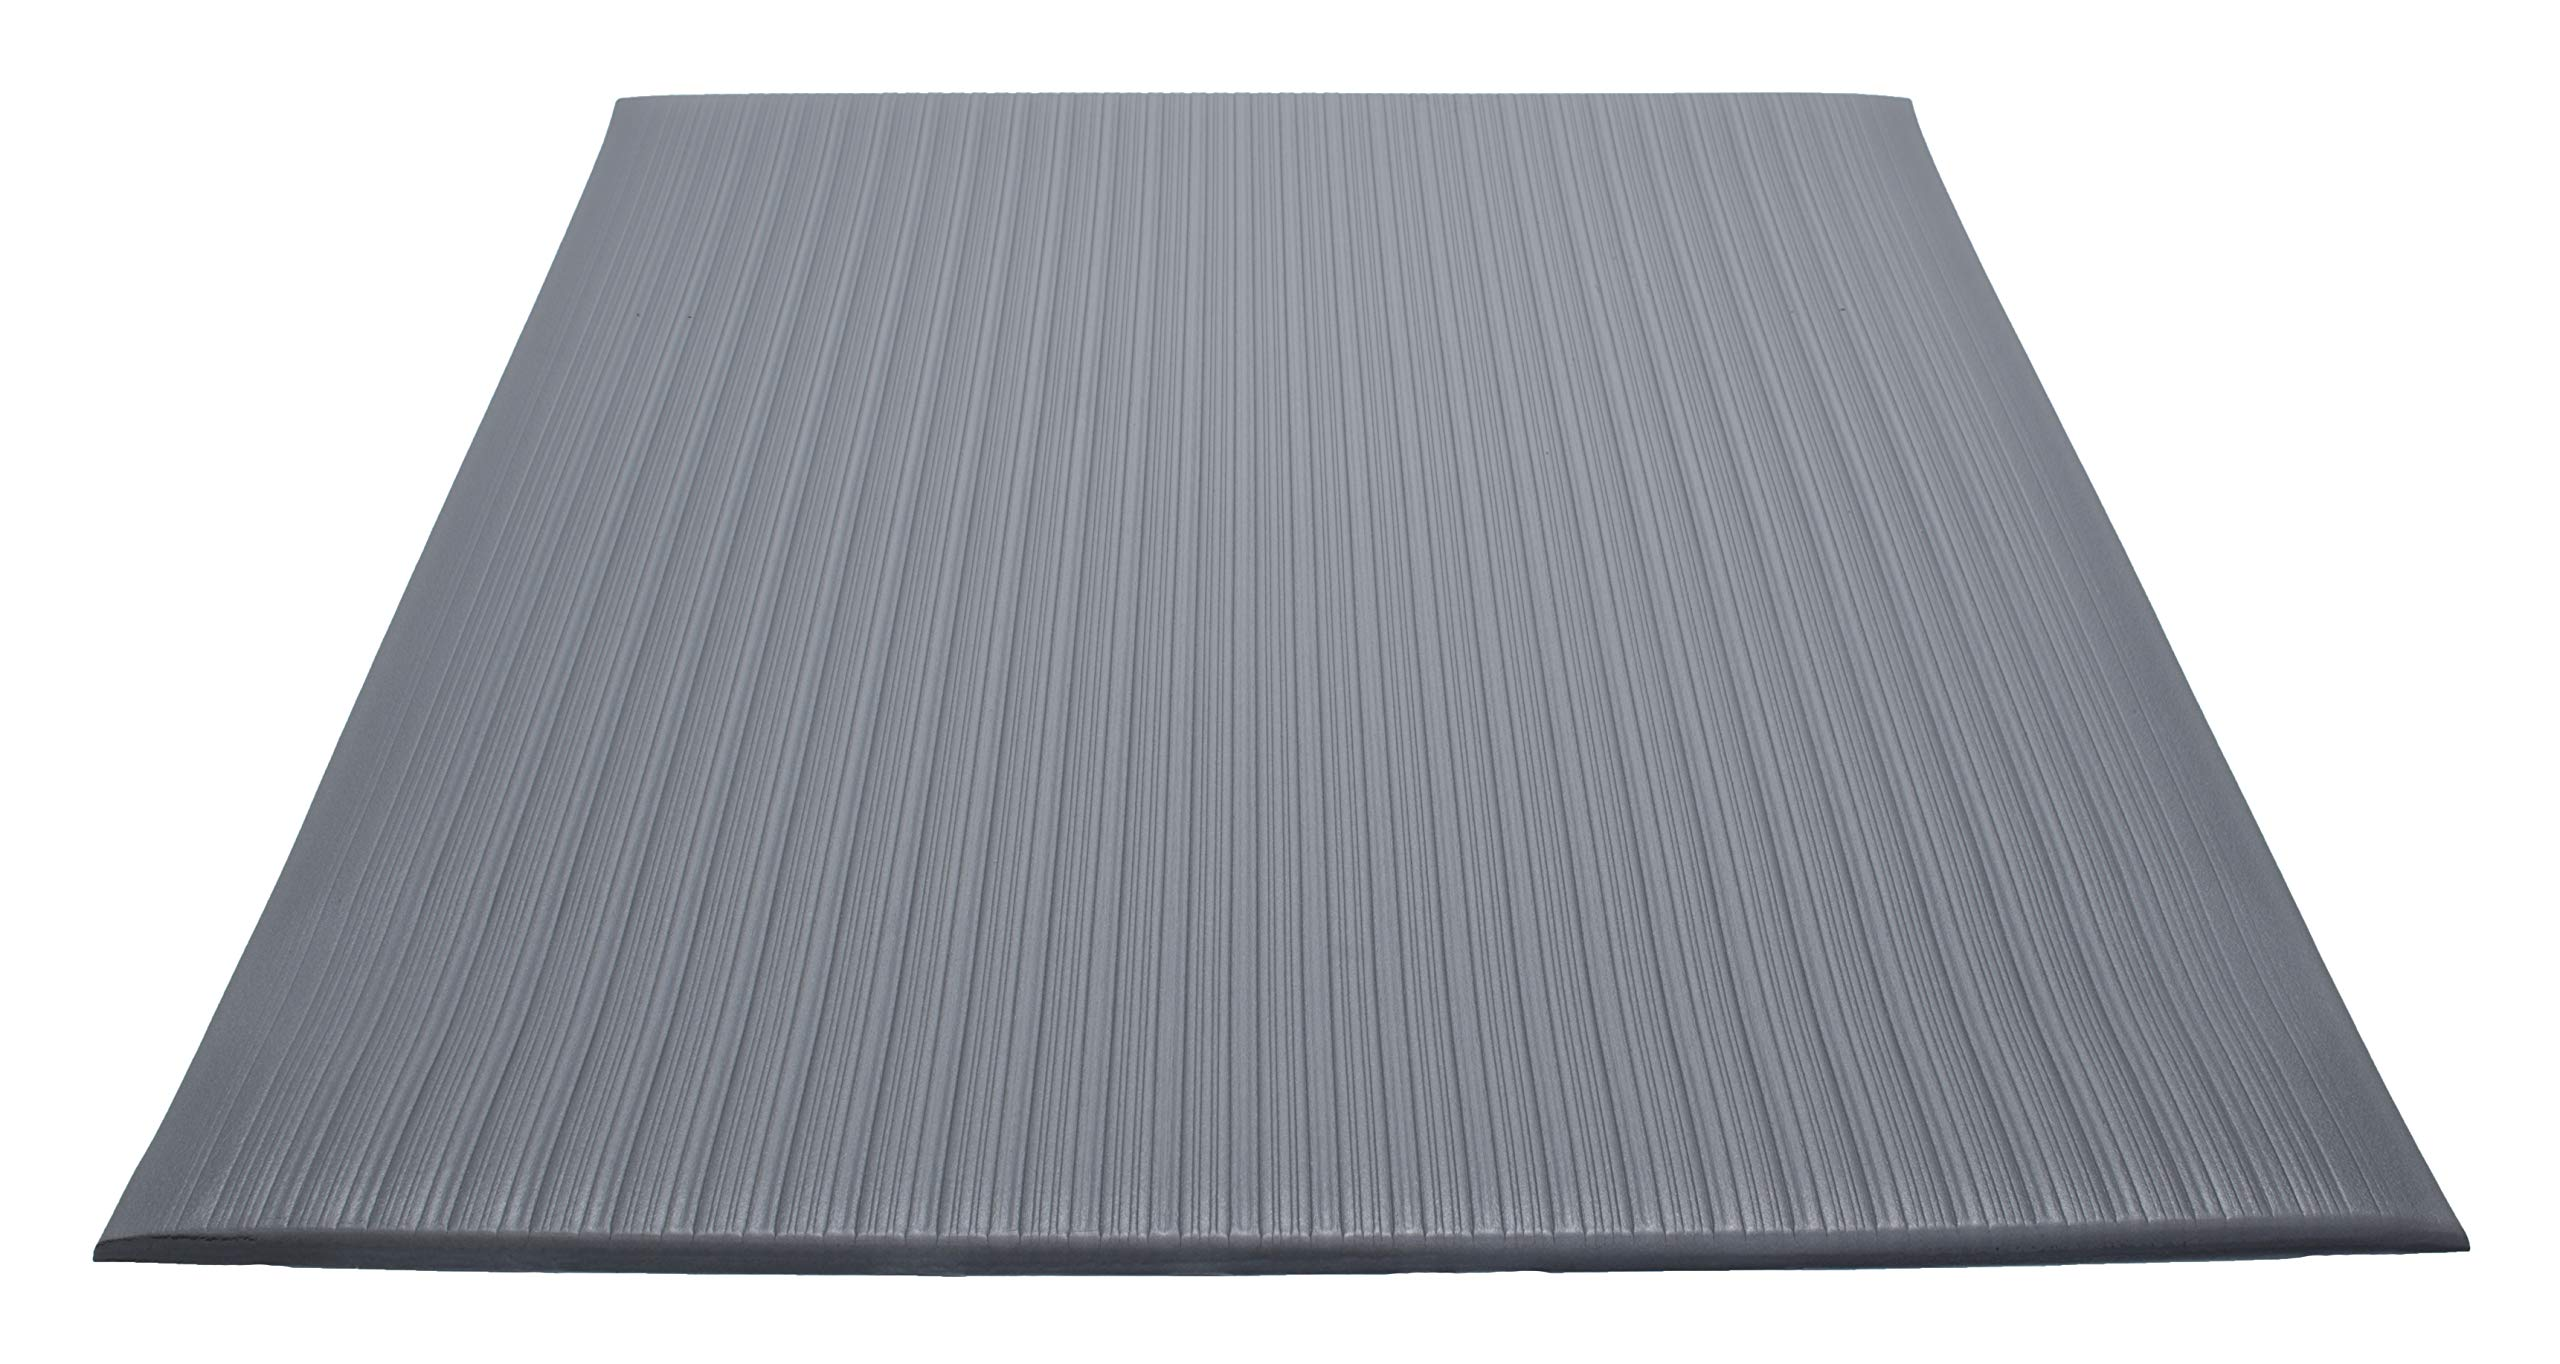 Guardian Air Step  Anti-Fatigue Floor Mat, Vinyl, 2'x60', Gray, Reduces fatigue and discomfort, Can be easily cut to fit any space